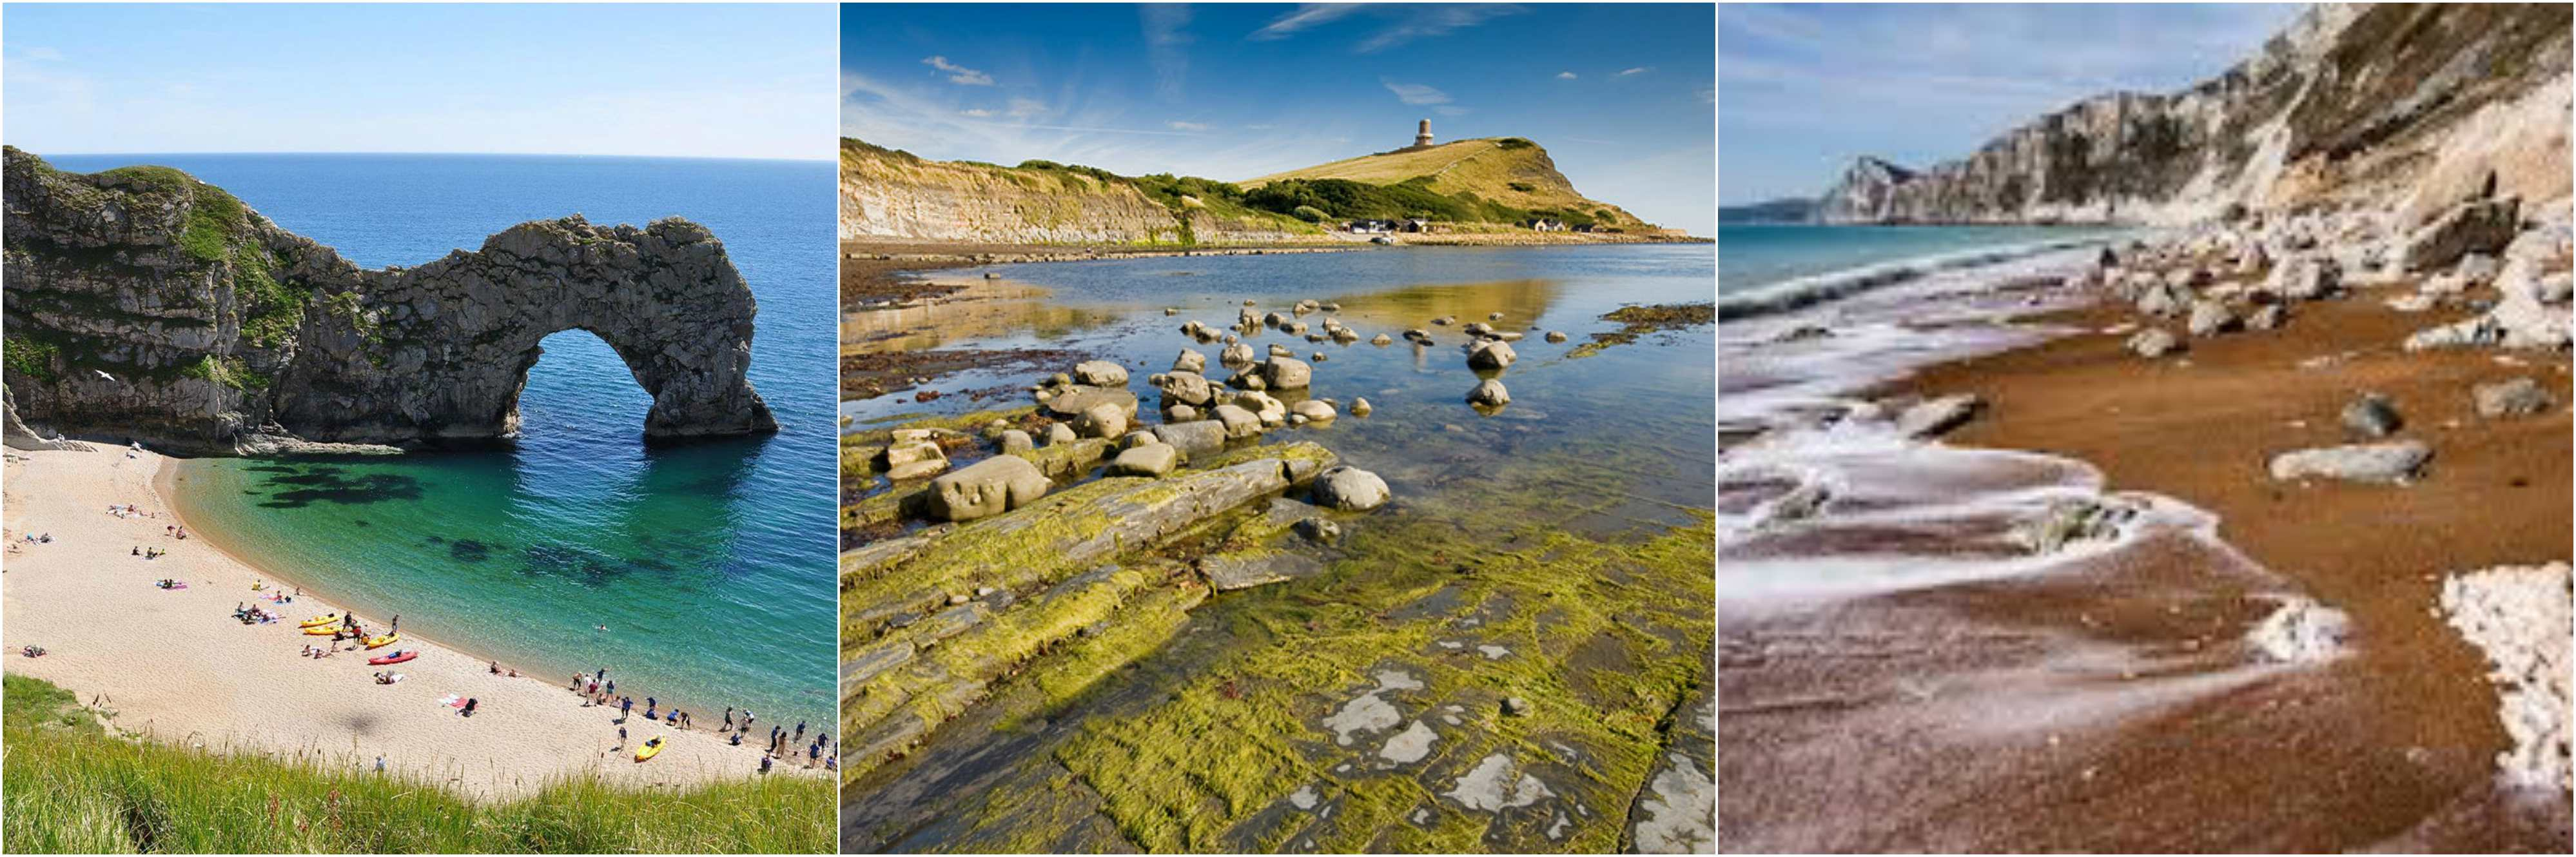 Visit Lulworth Cove Kimmeridge Ringstead Bay Durdle Door or Worbarrow Bay with its deserted village of Tyneham. : durdel door - pezcame.com